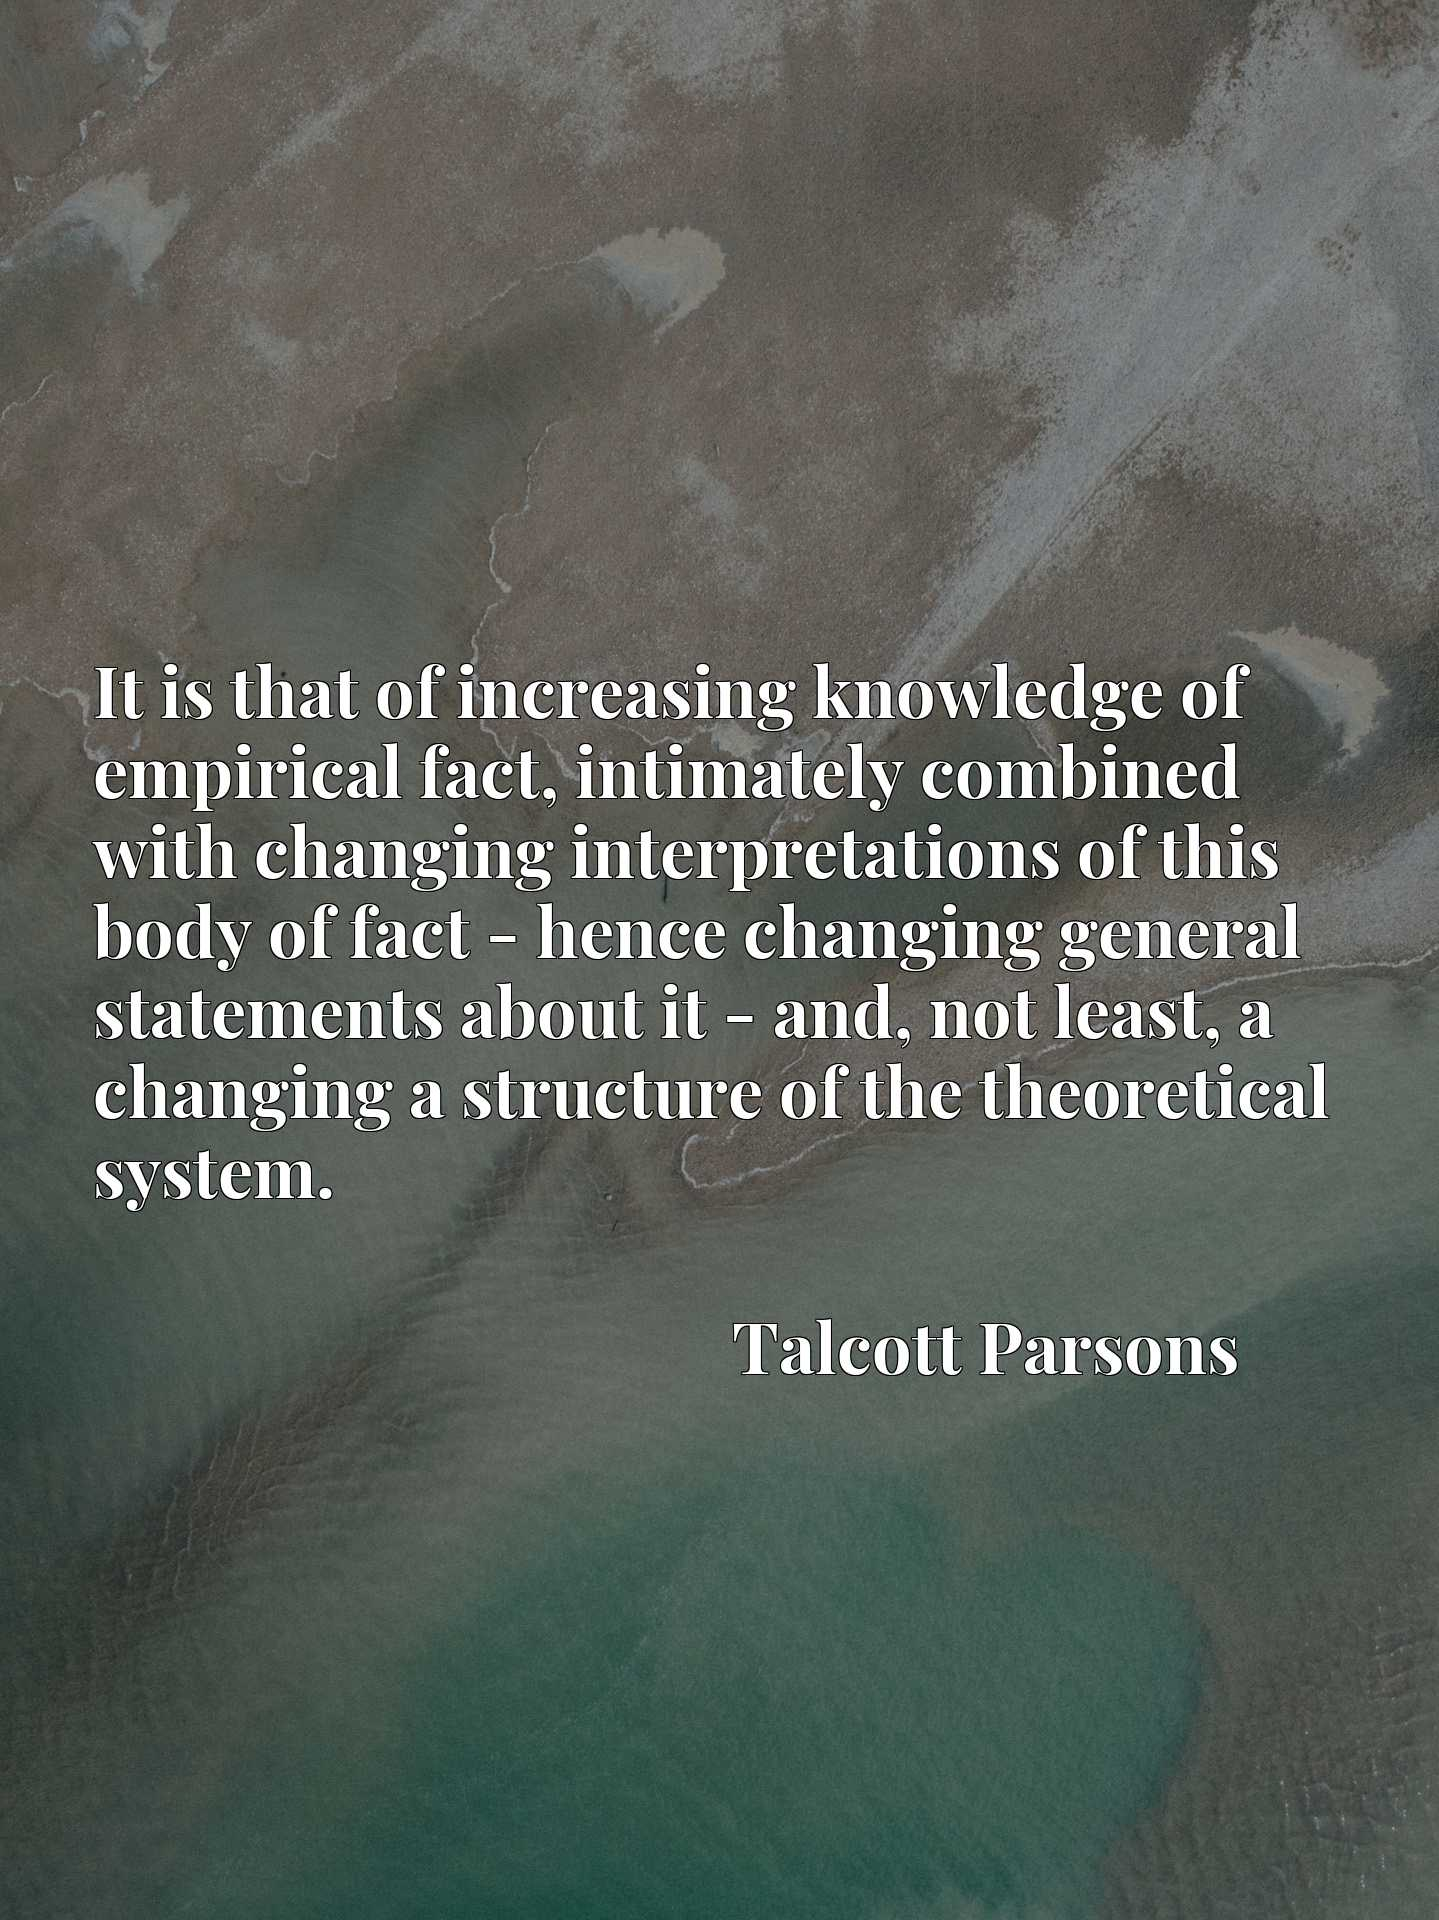 It is that of increasing knowledge of empirical fact, intimately combined with changing interpretations of this body of fact - hence changing general statements about it - and, not least, a changing a structure of the theoretical system.